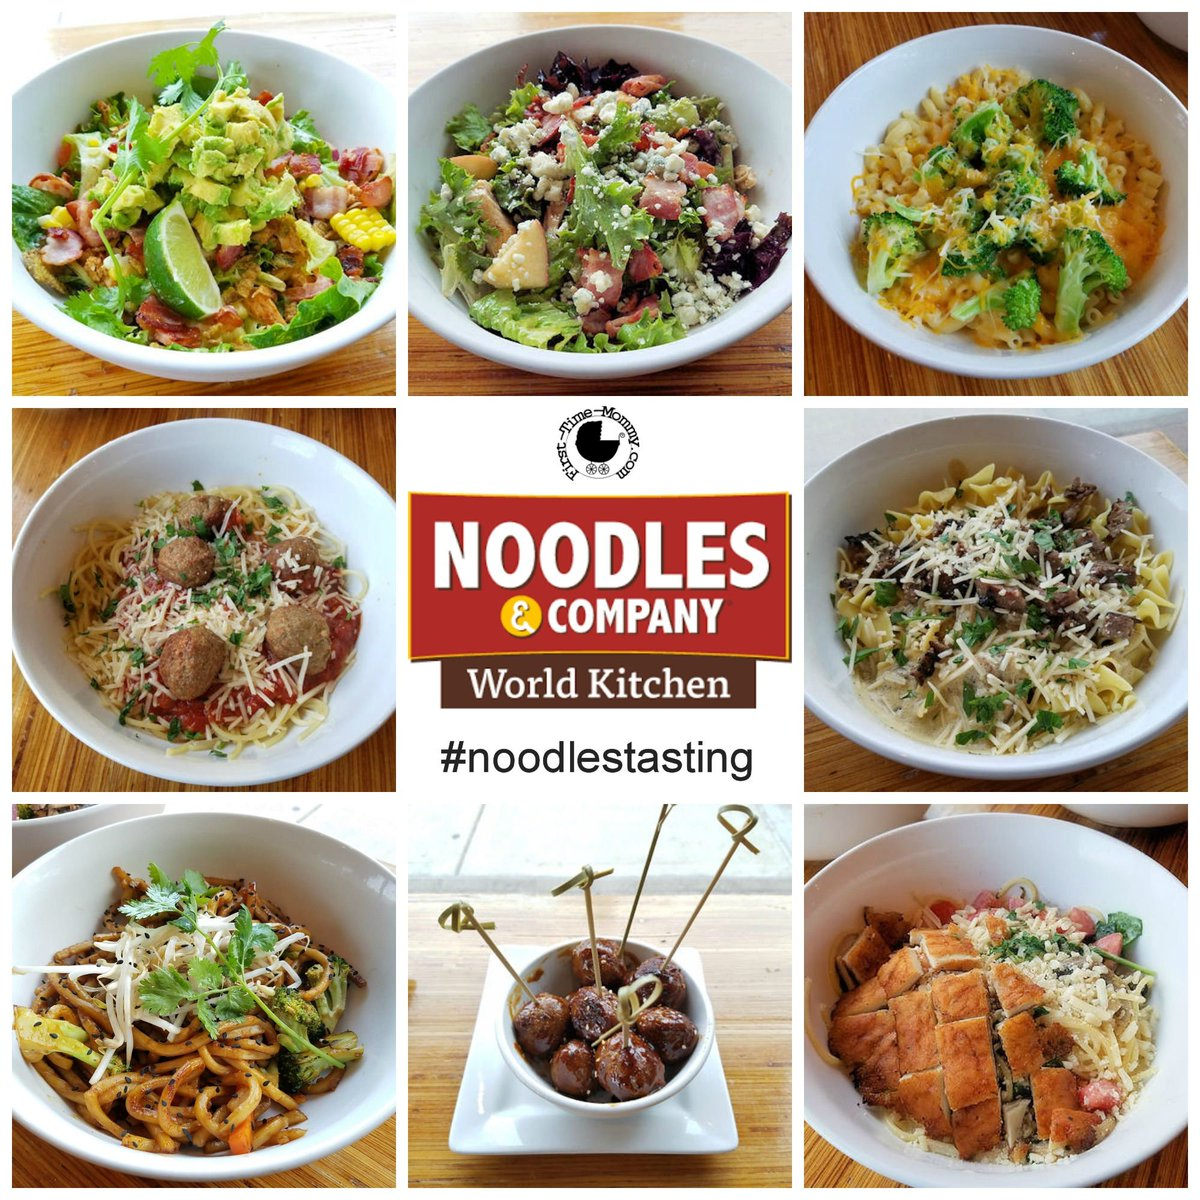 Must try! @Noodlescompany New Chicken Veracruz & Napa Market Salad with Chicken #giveaway https://t.co/Xvp3Nc4MbO https://t.co/Pzx7TMYIWA